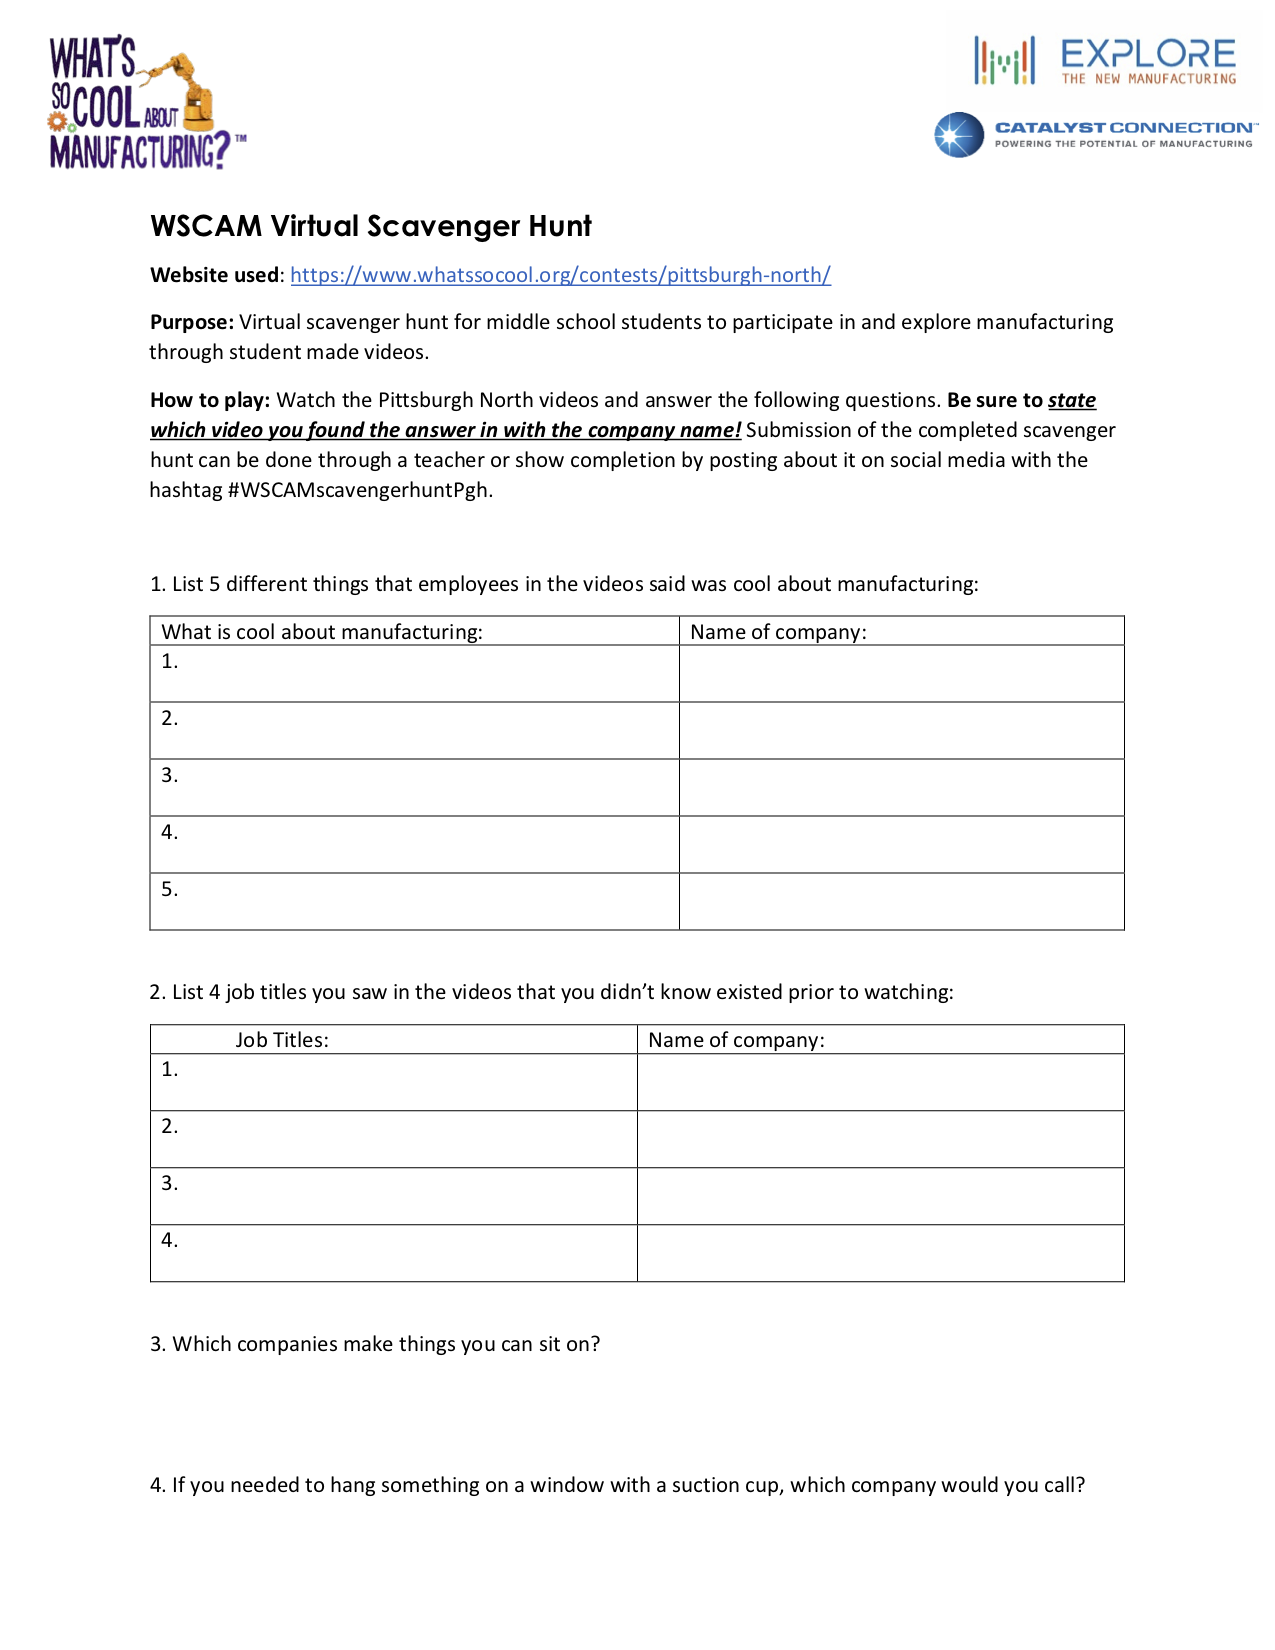 WSCAM-North-Video-Contest-Scavenger-Hunt.png